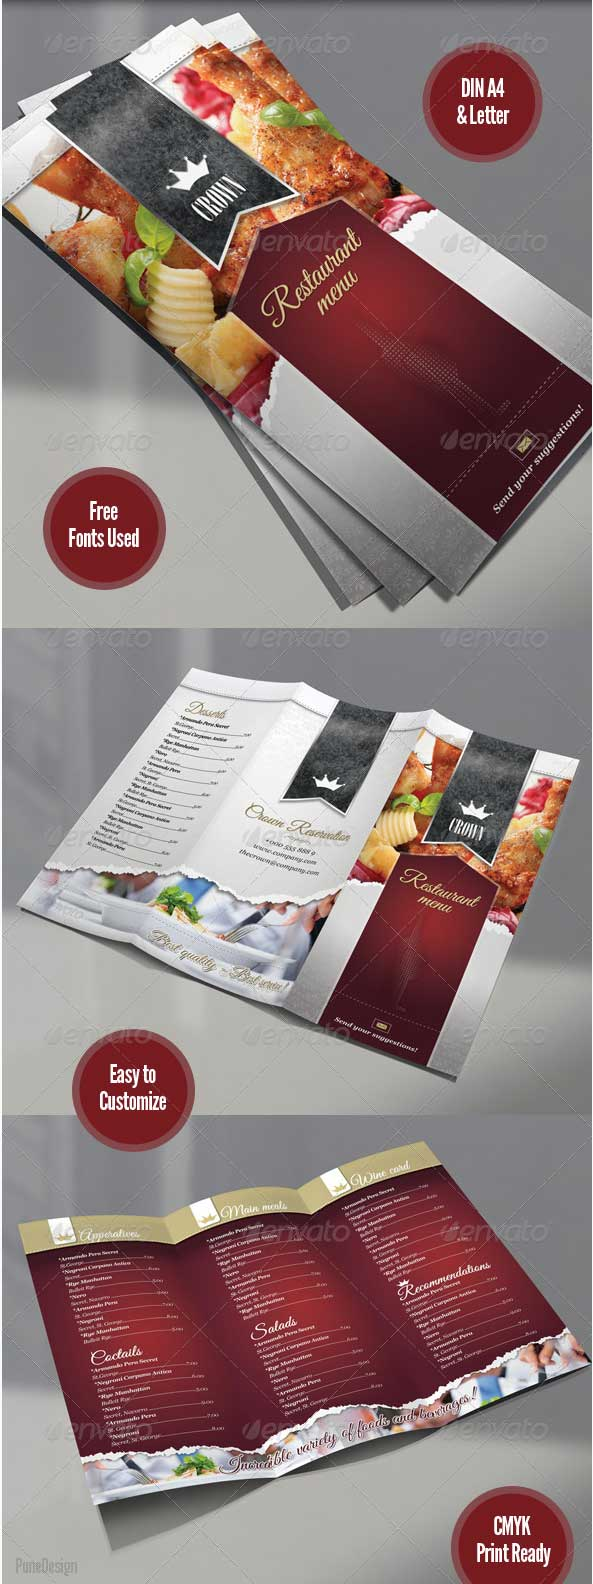 trifold-restaurant-menu-template